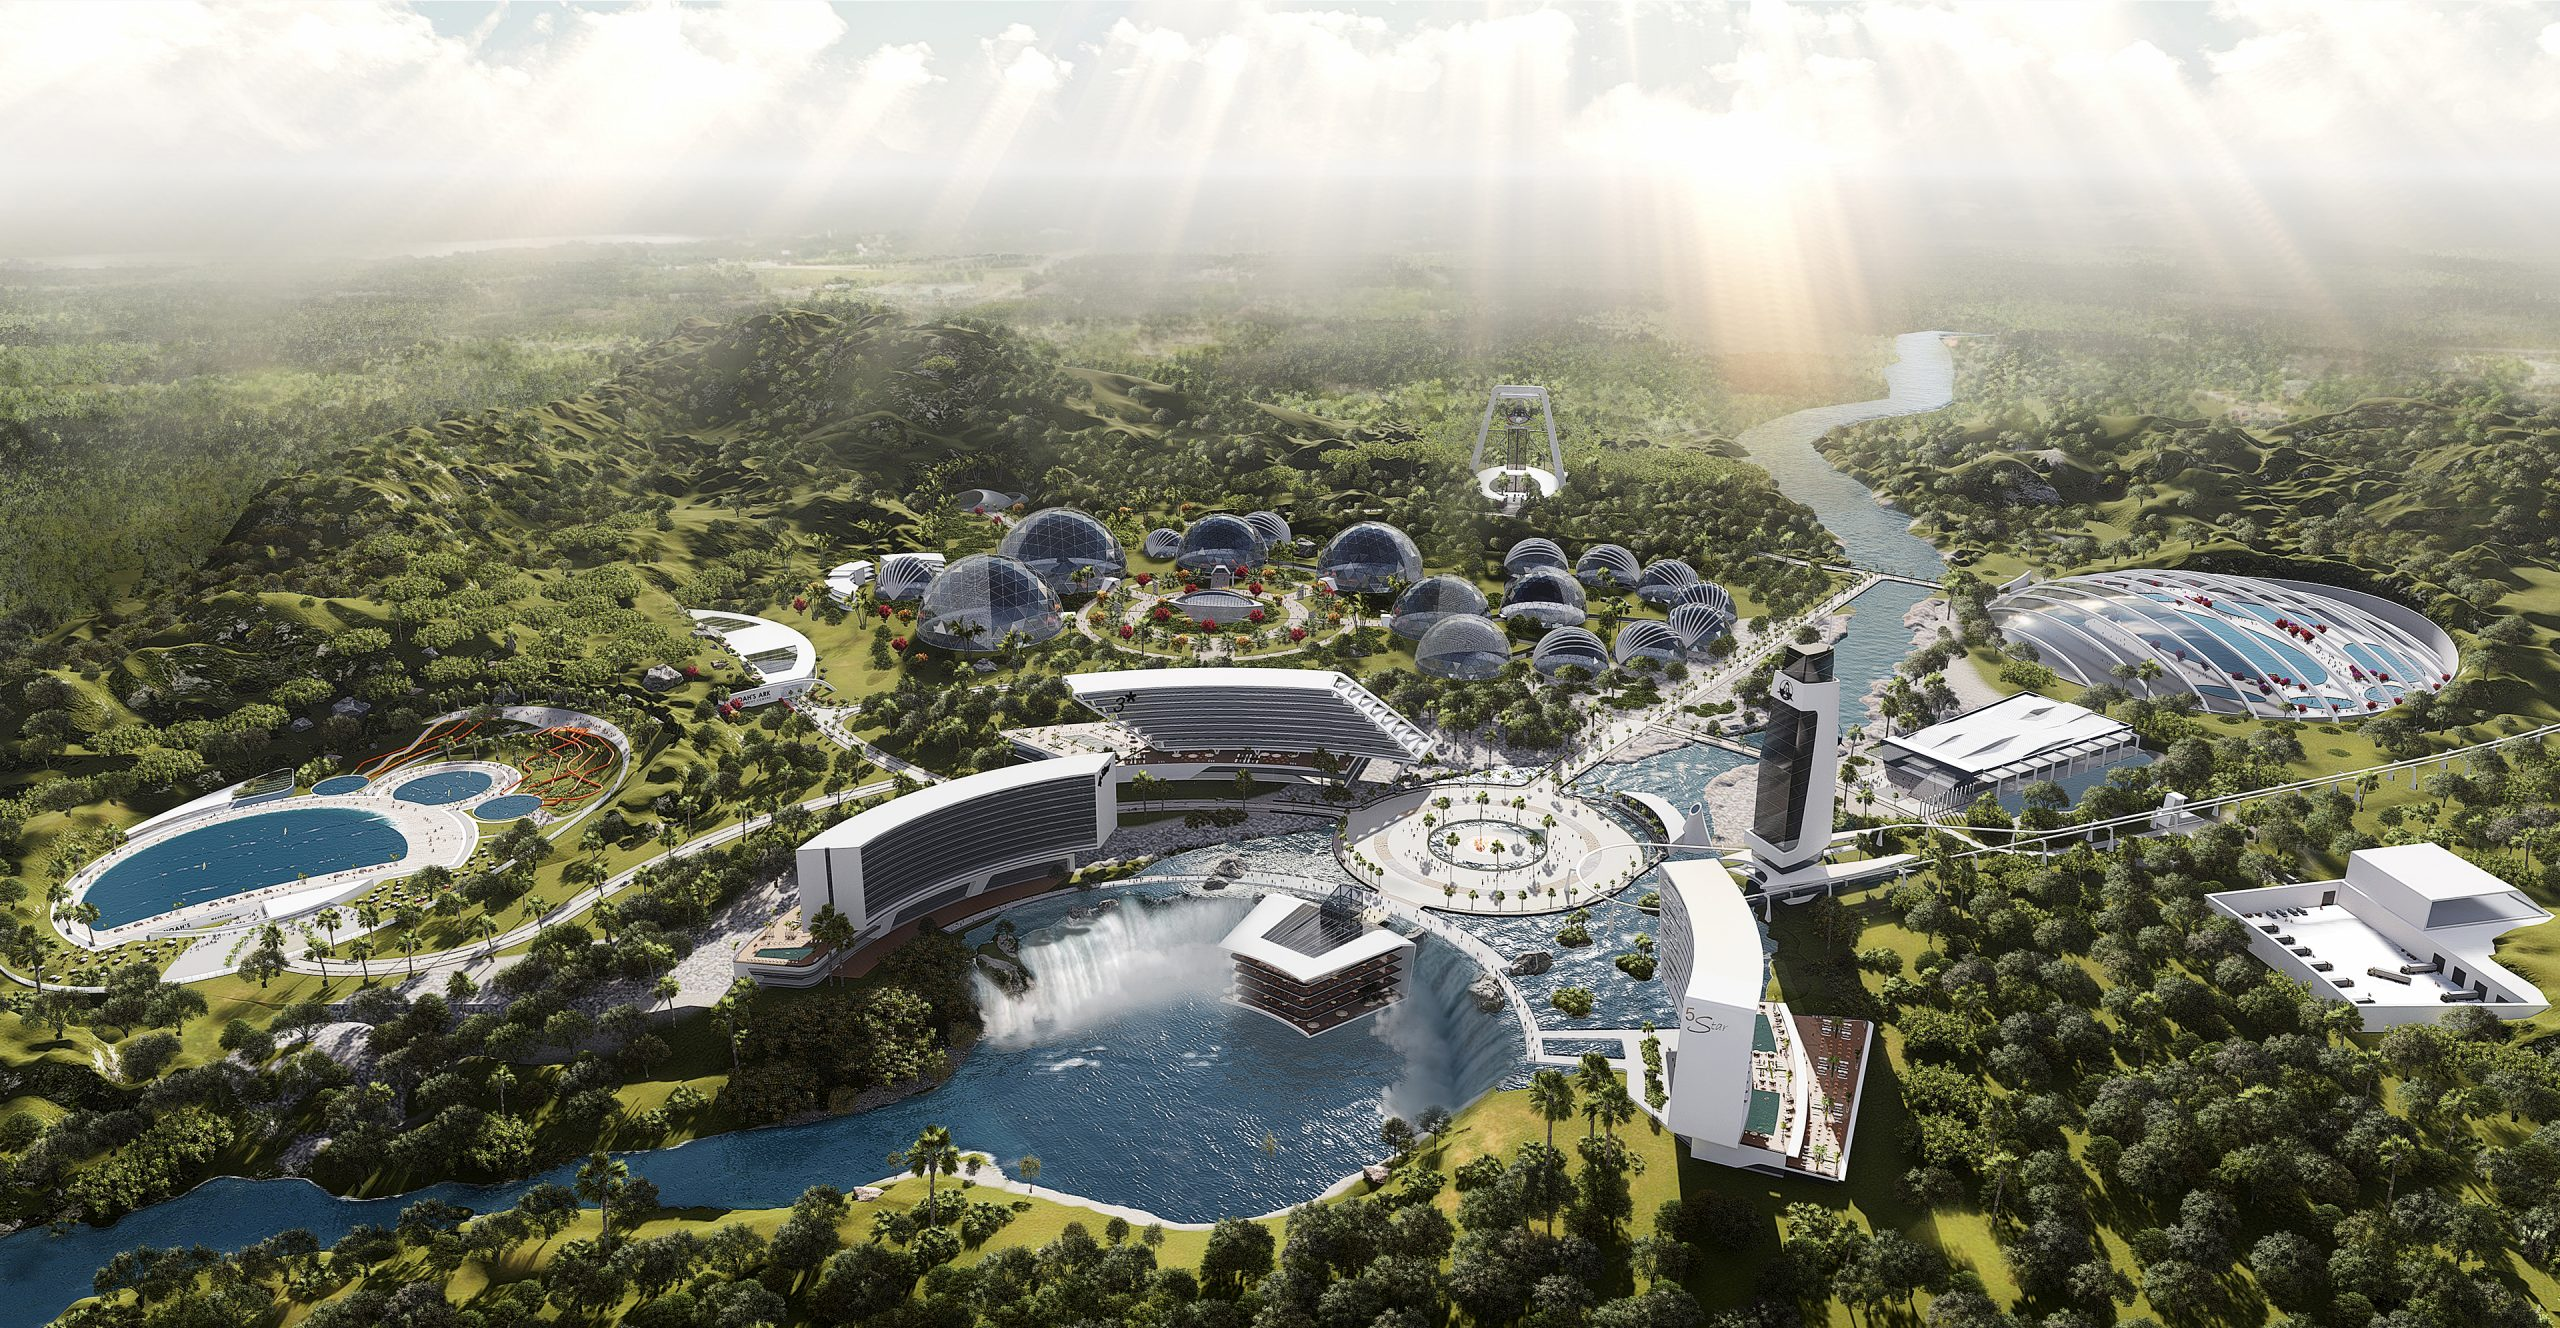 Noah\'s Ark - State-of-the-art animal and ecological conservation park To Be Built To Protect The World's Animals Press Office